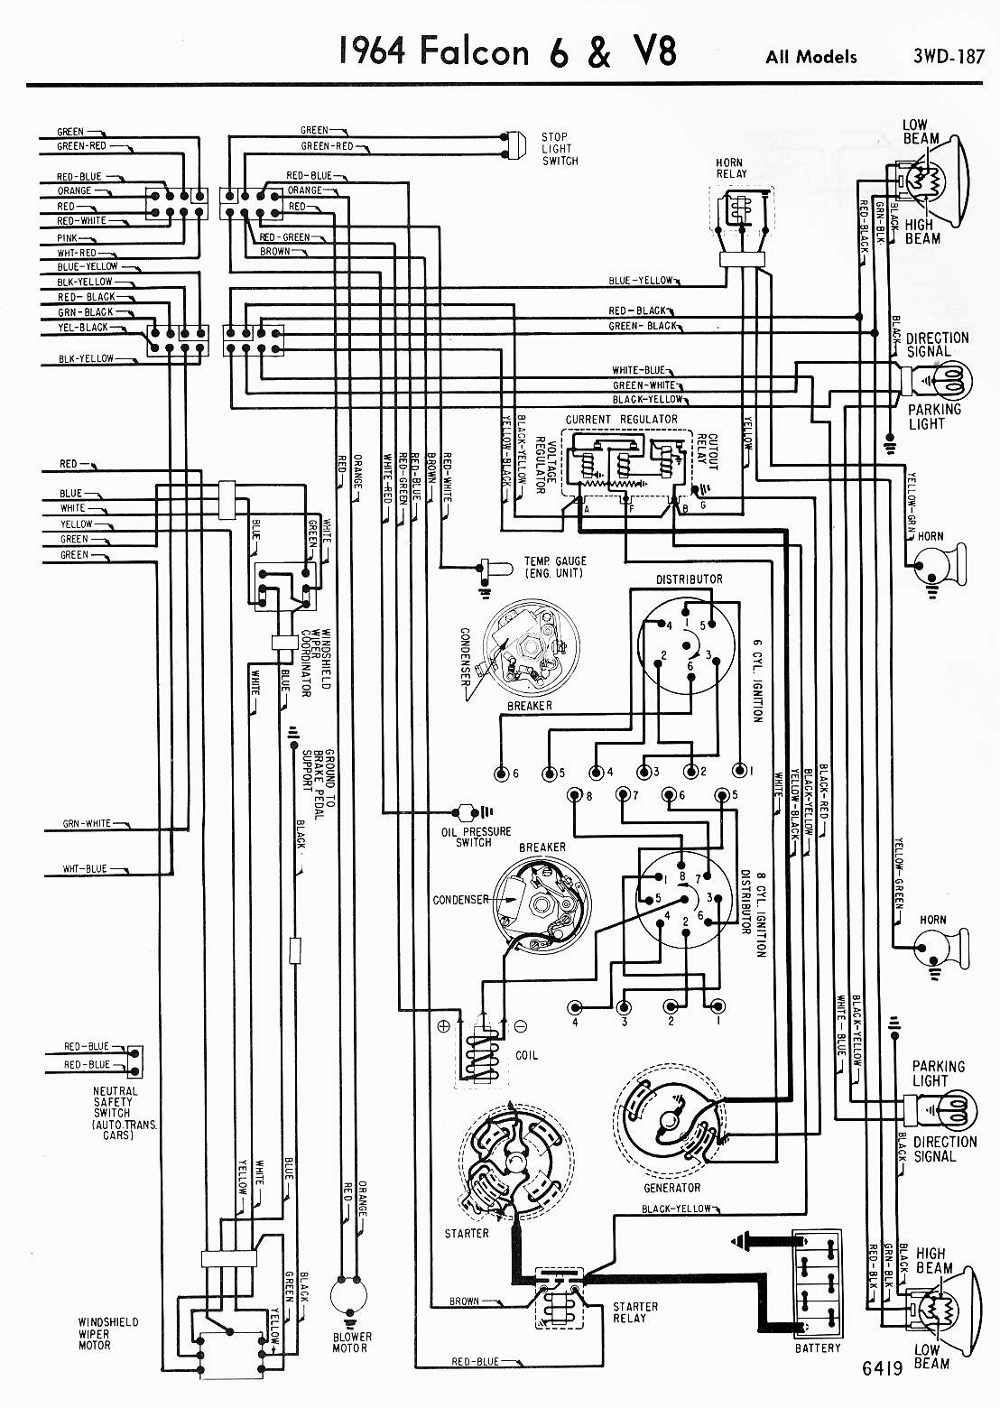 Wiring Diagram 1964 Ford Futura - Data Wiring Diagram Schematic on ar diagram, pe diagram, vg diagram, ac diagram, cd diagram, vn diagram, pt diagram, ro diagram, ba diagram,